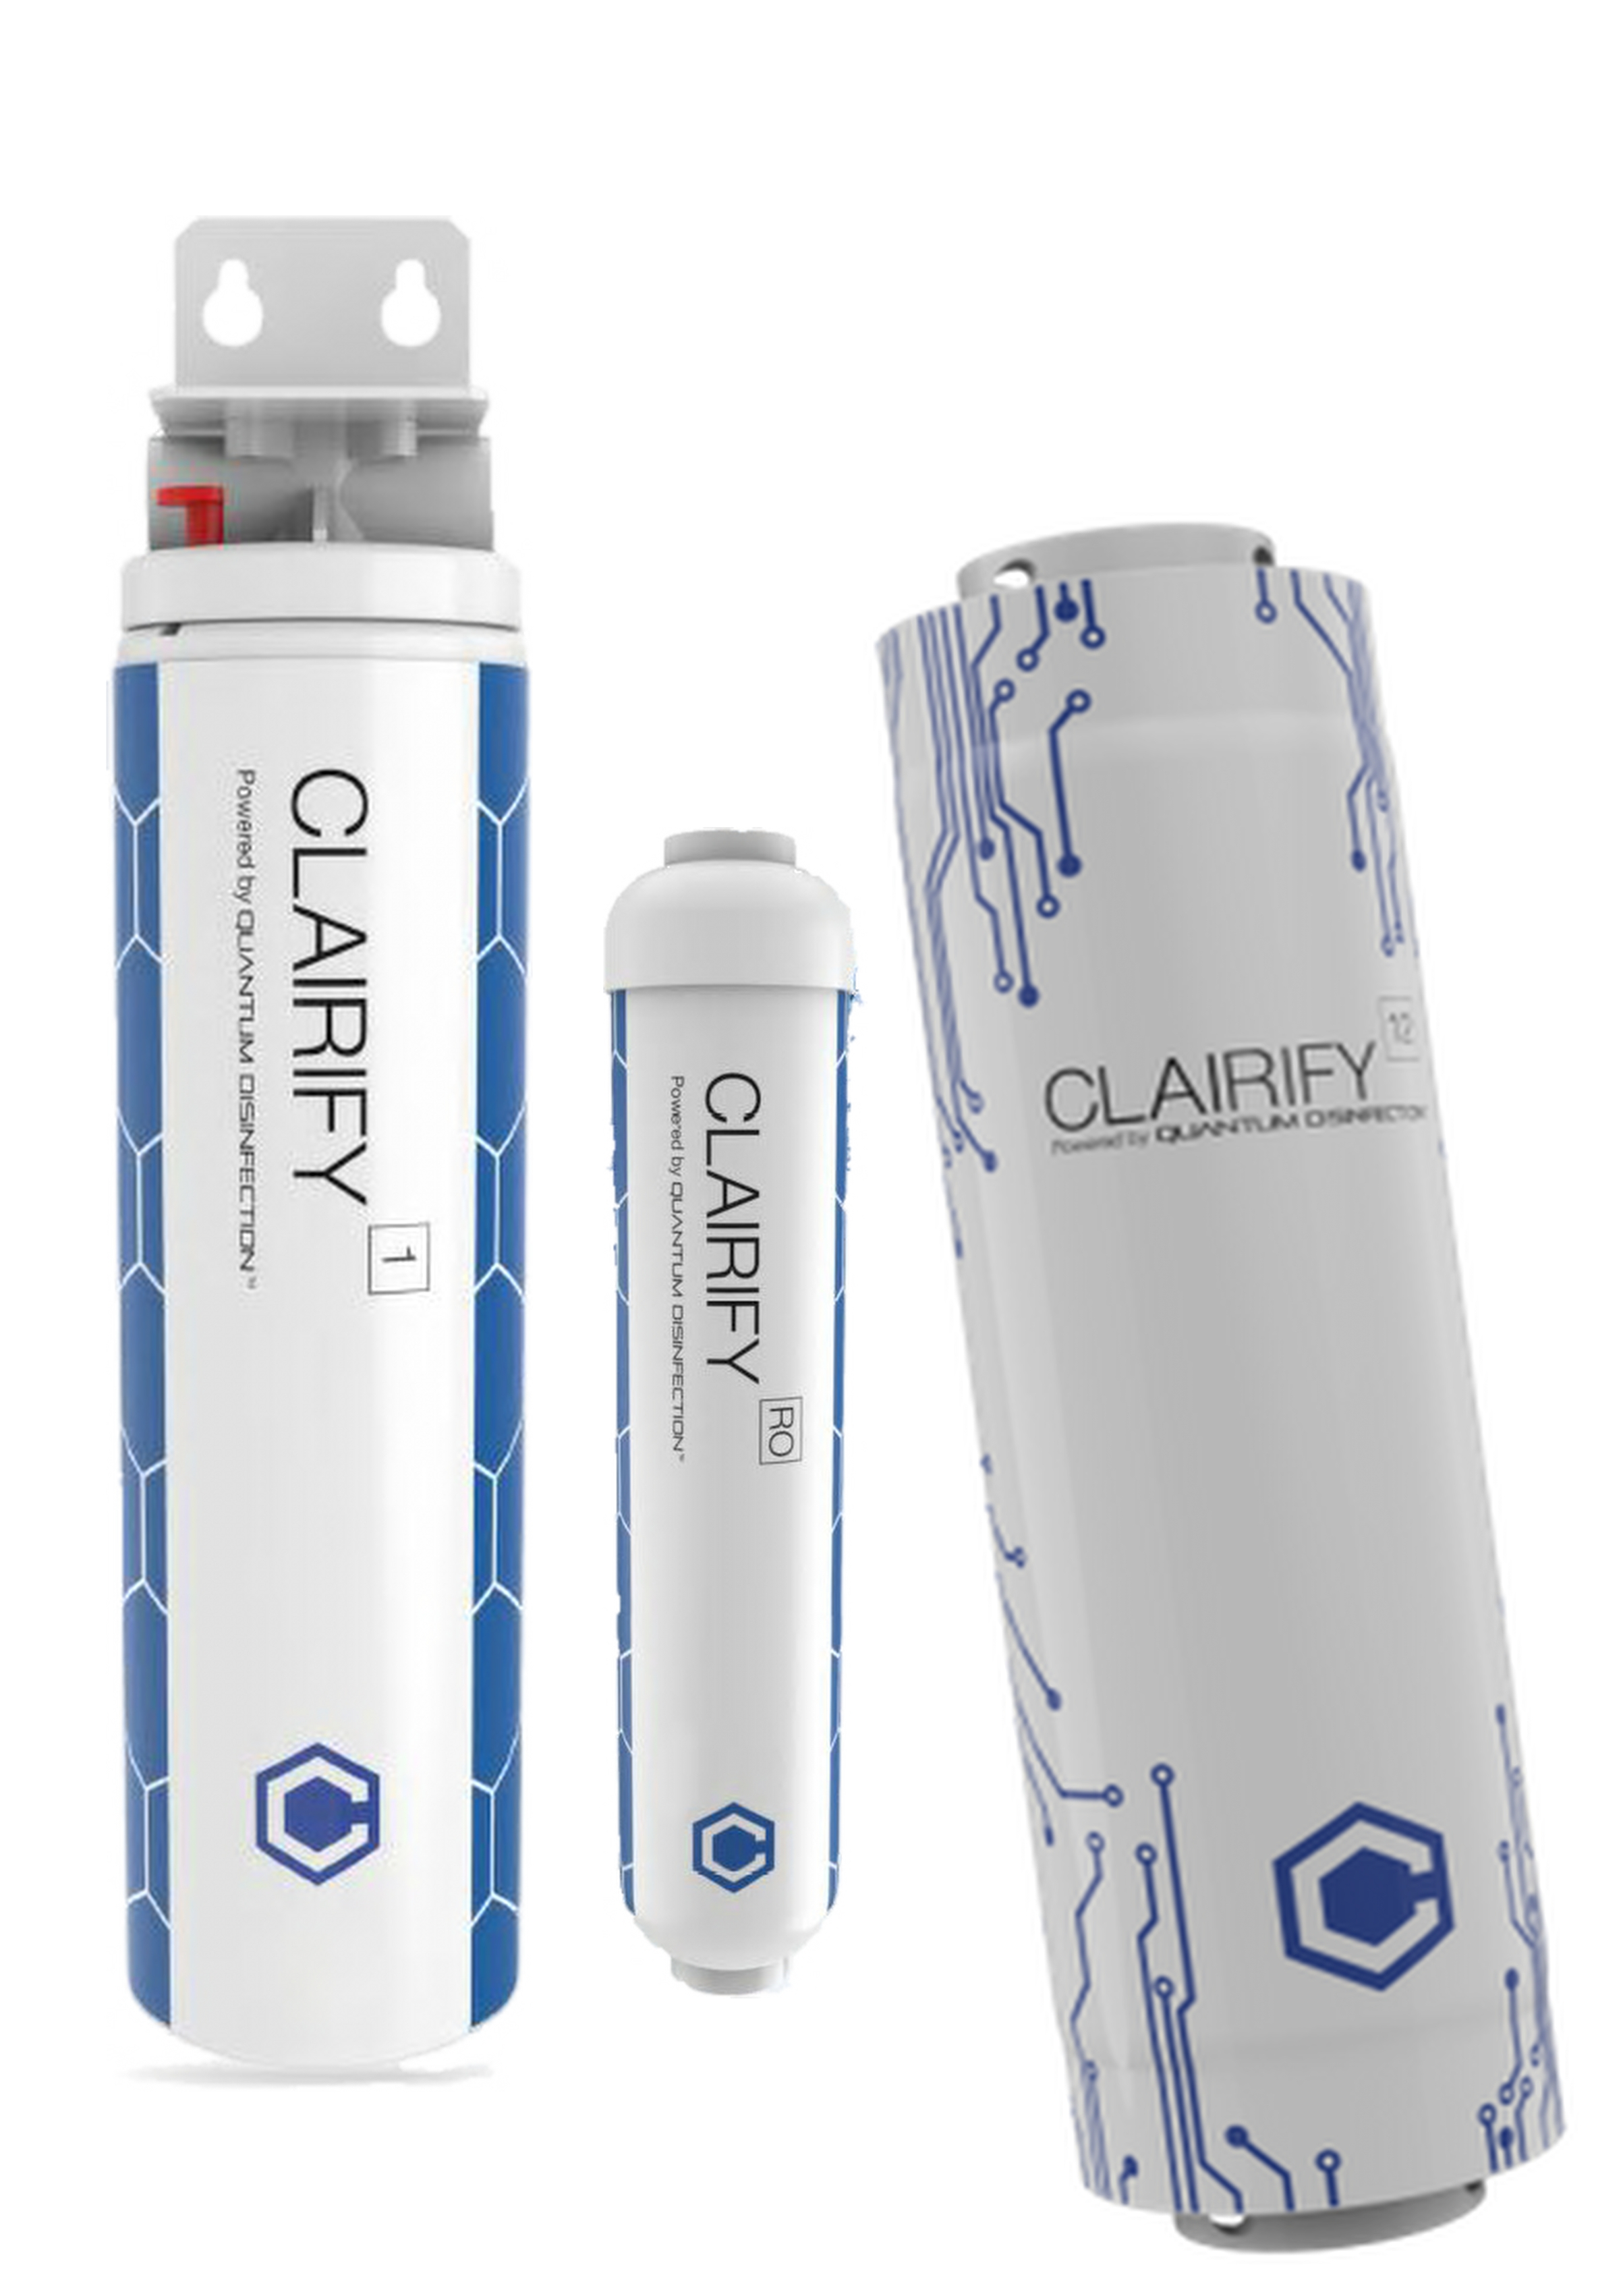 CLAIRIFY Quantum Disinfection.jpg